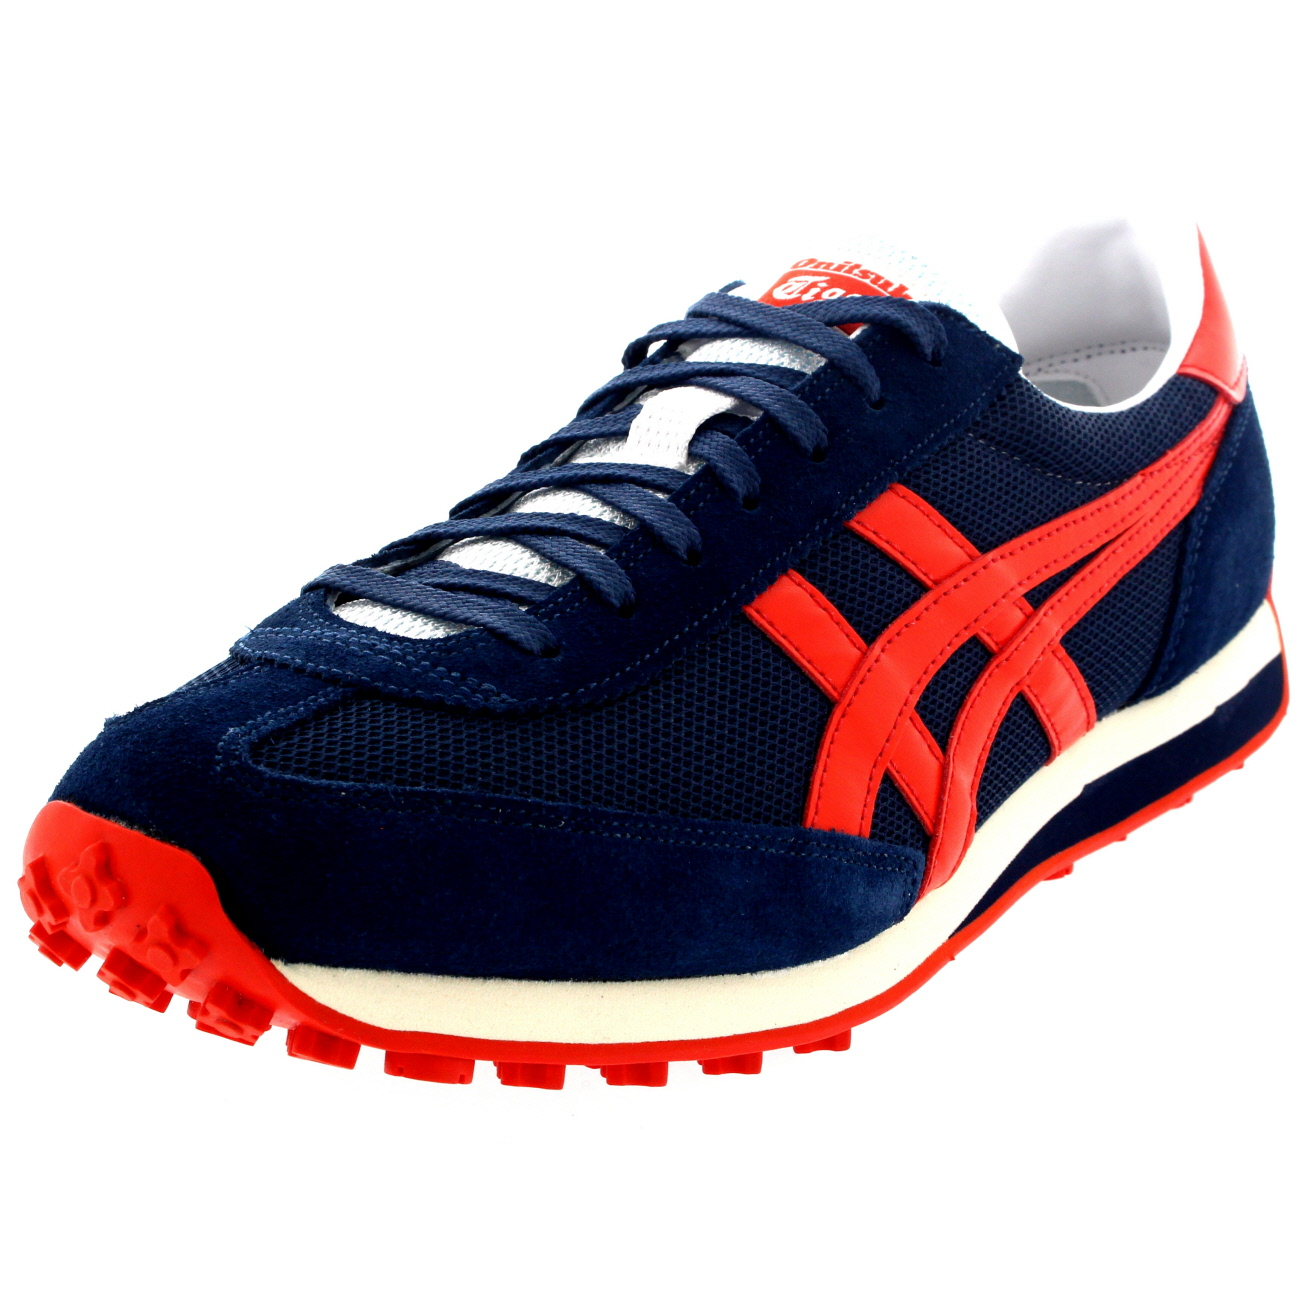 en66cwer sale onitsuka tiger edr 78 classic. Black Bedroom Furniture Sets. Home Design Ideas